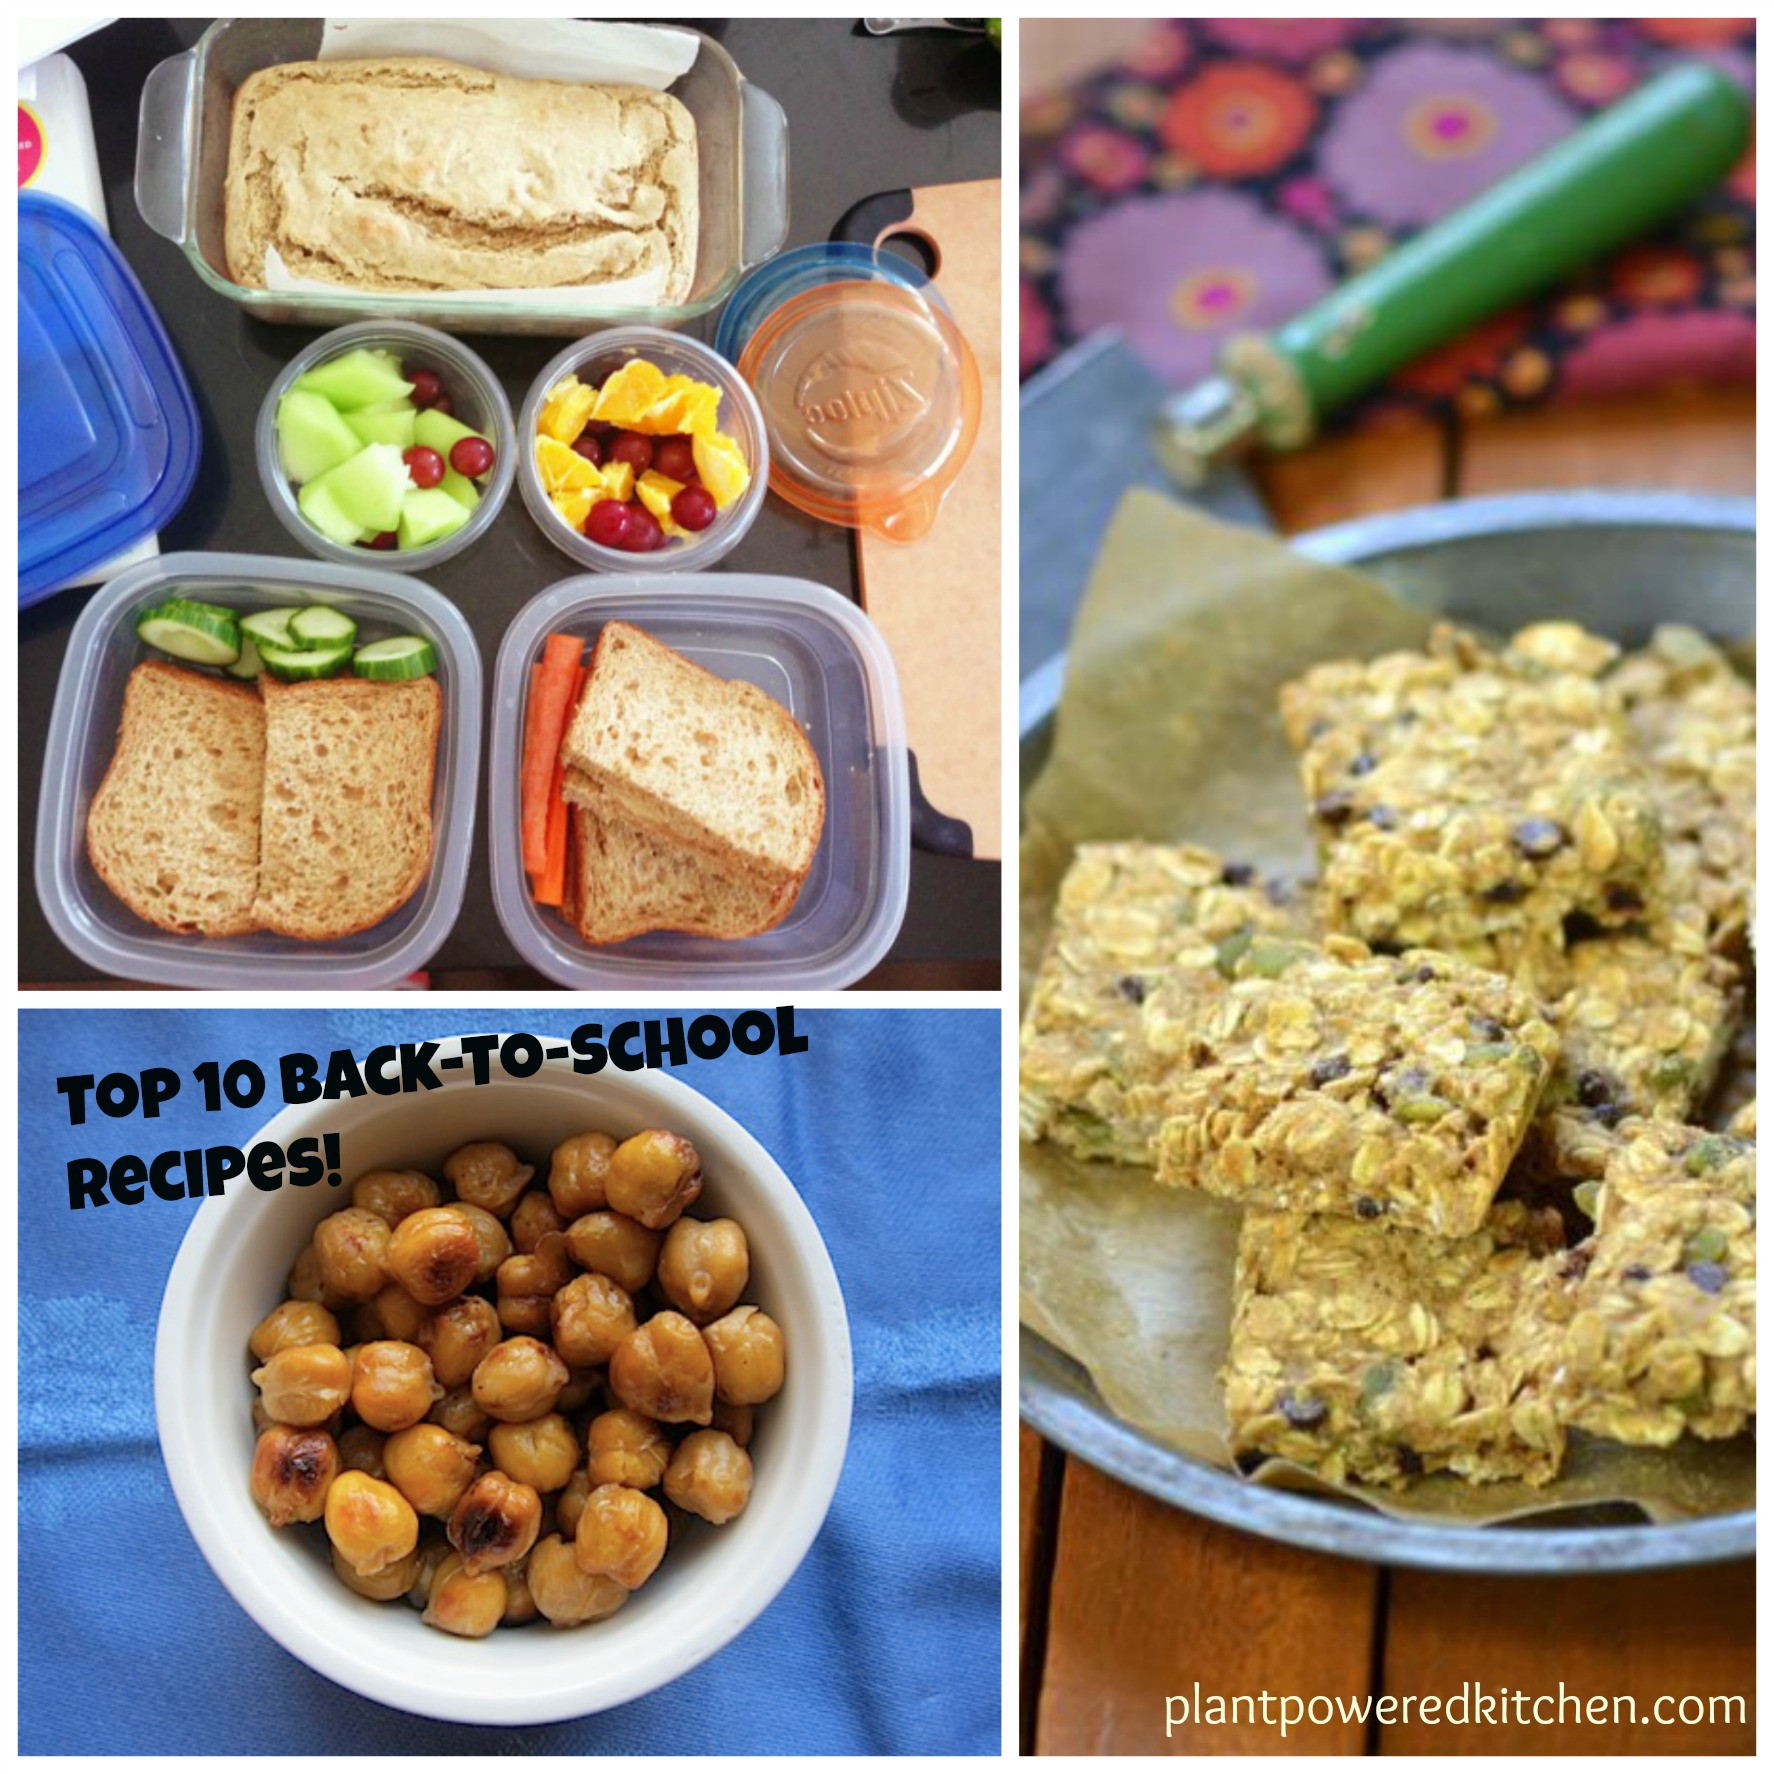 Packing Healthy Lunches  Top 10 Recipes for Back To School and Tips for Packing